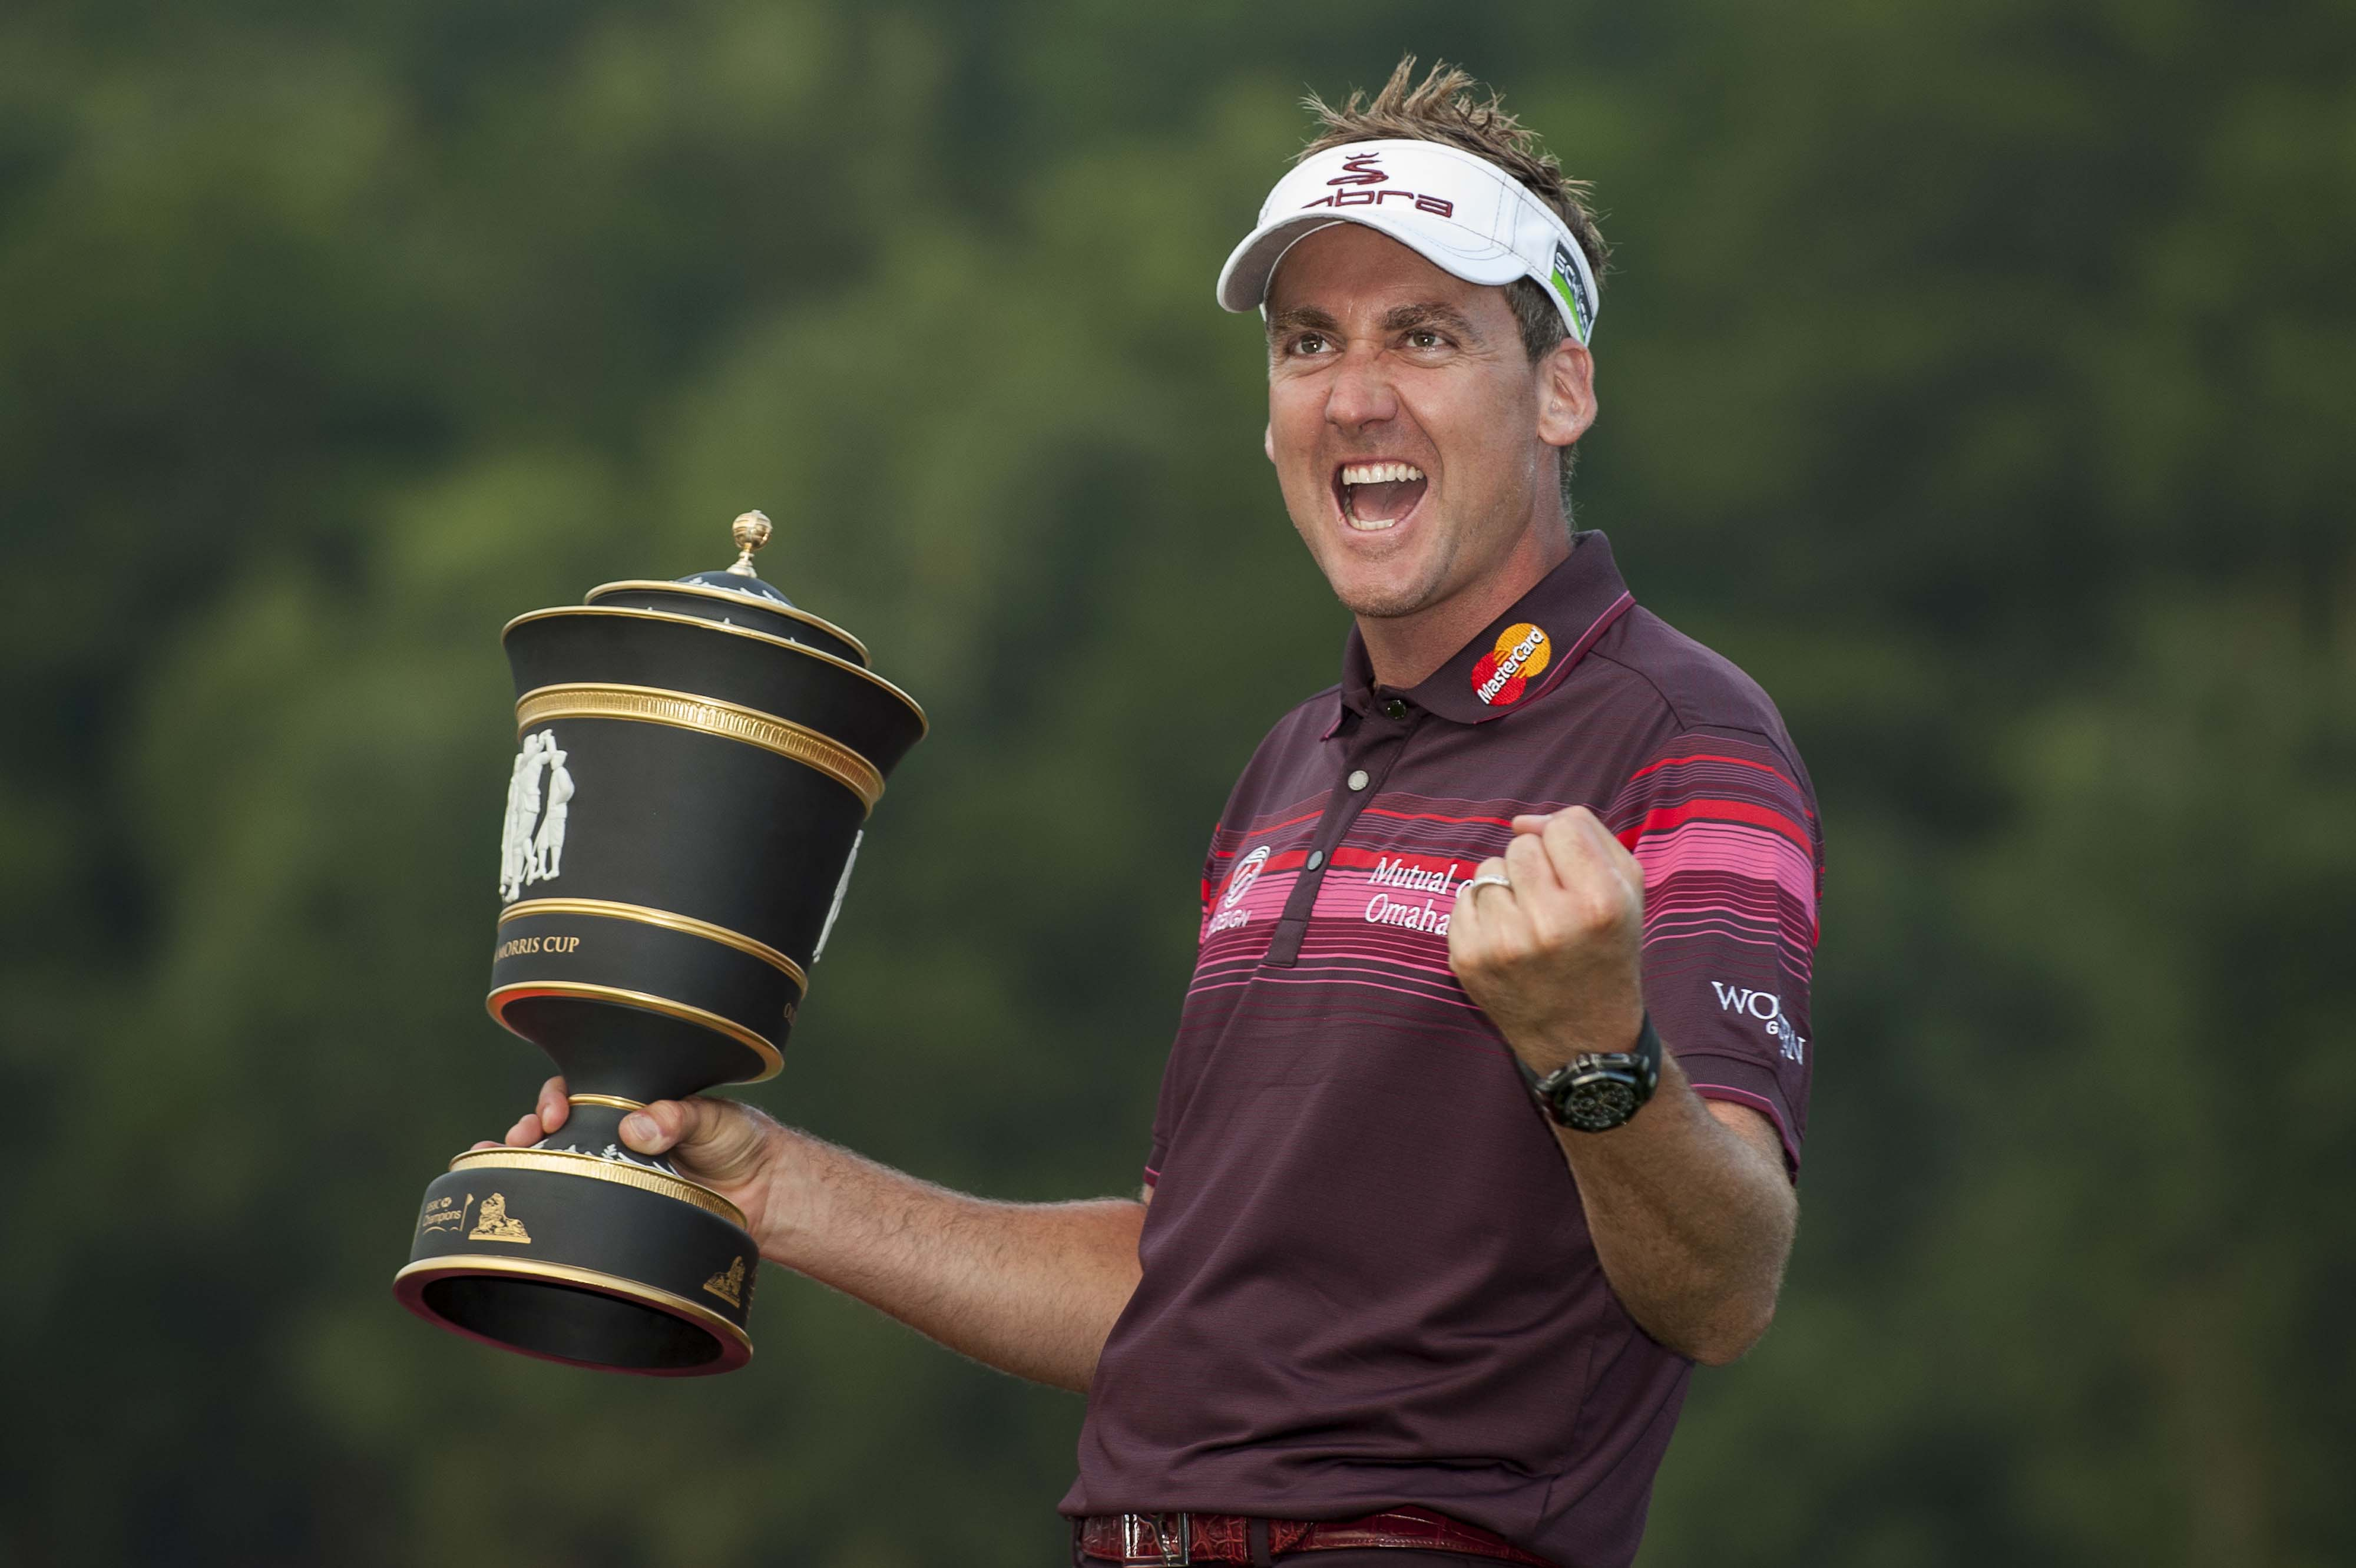 10. 2012: Poulter rides Ryder Cup high